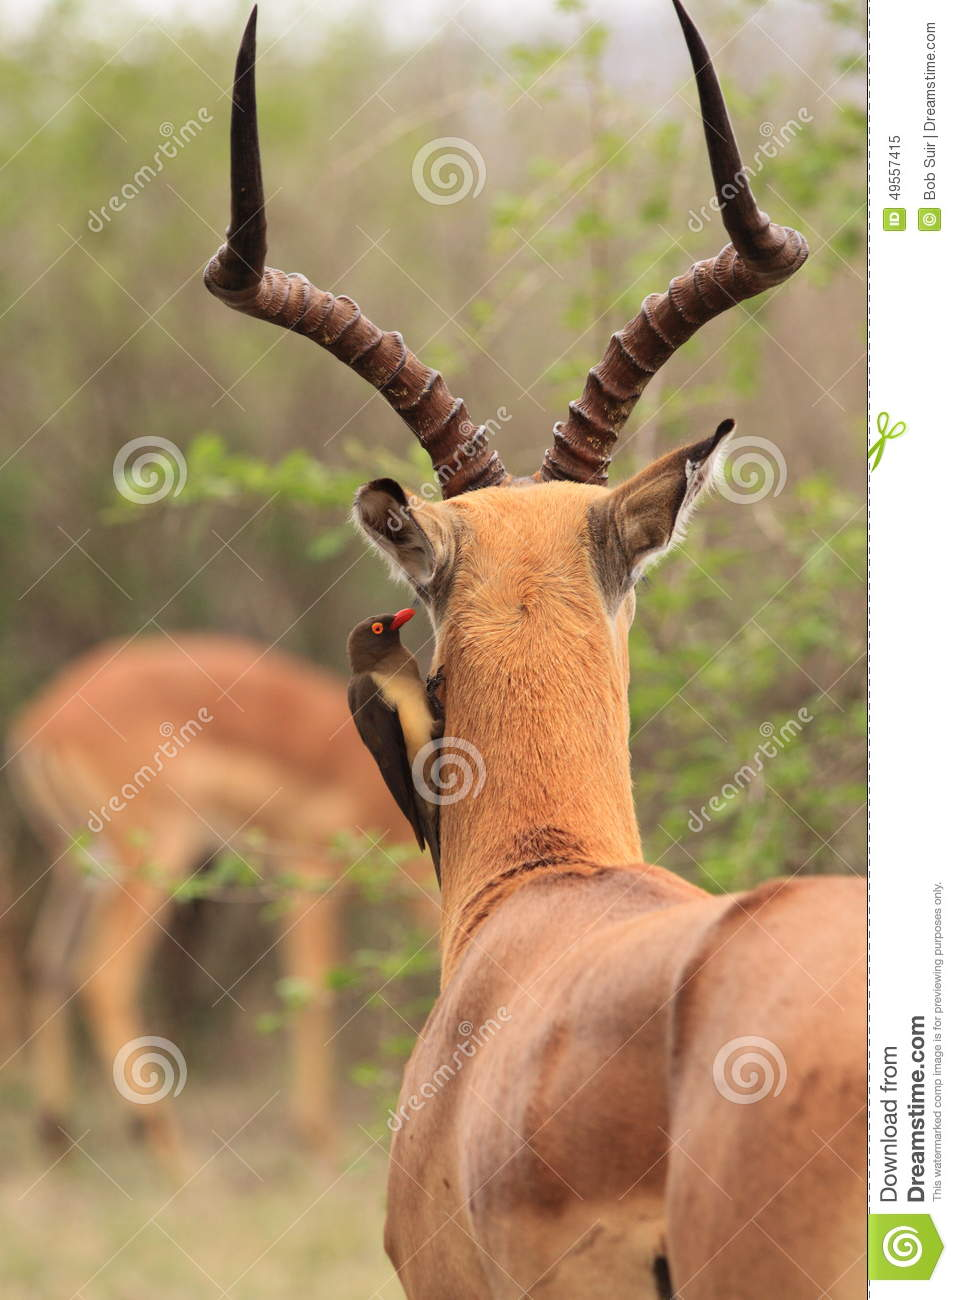 Impala with oxpecker